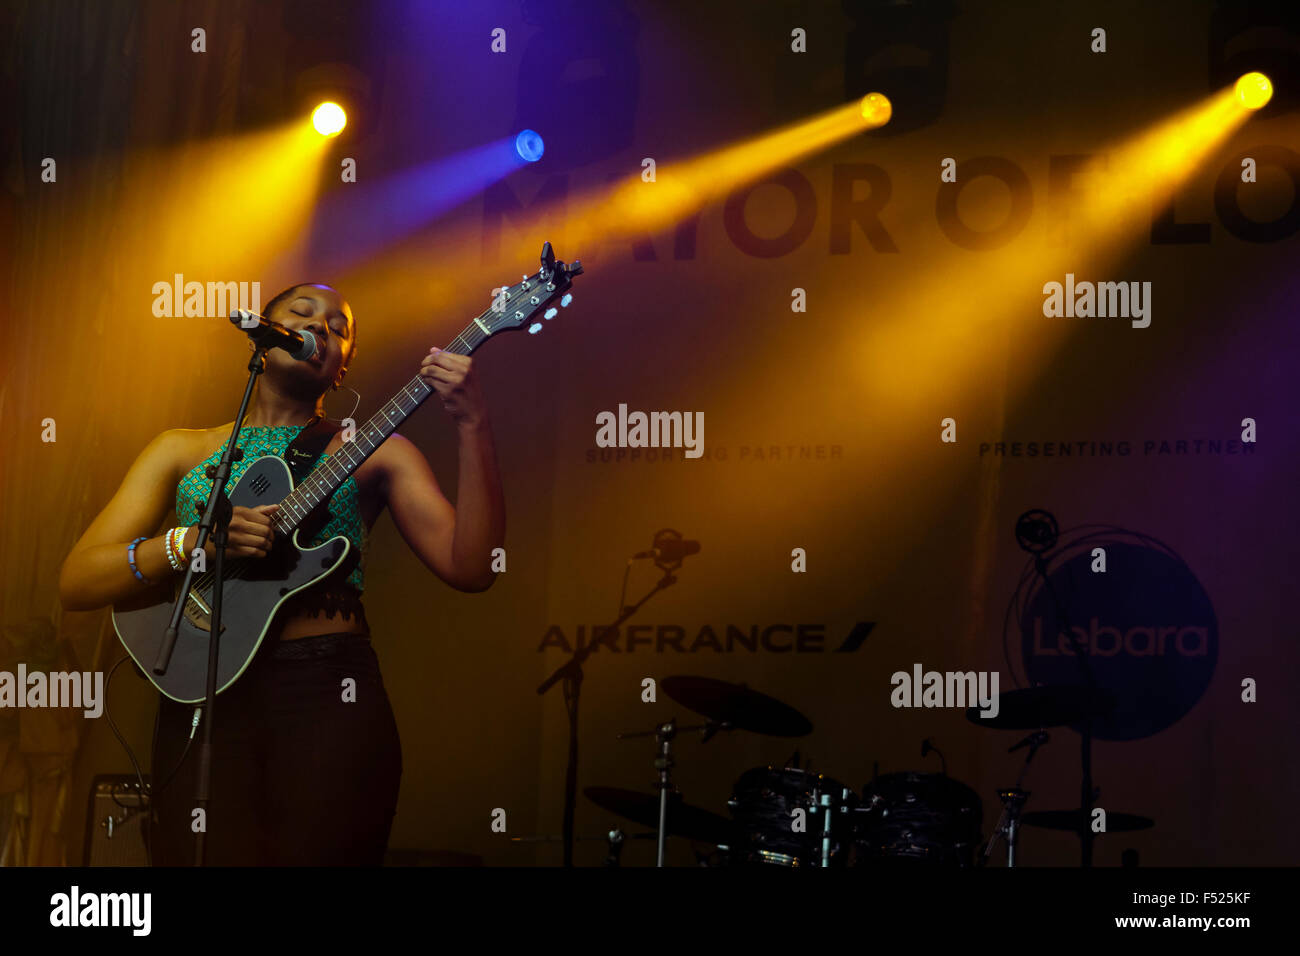 Kemi Aneke, performing on stage at  Africa on the Square, Trafalgar Square, 2015. - Stock Image